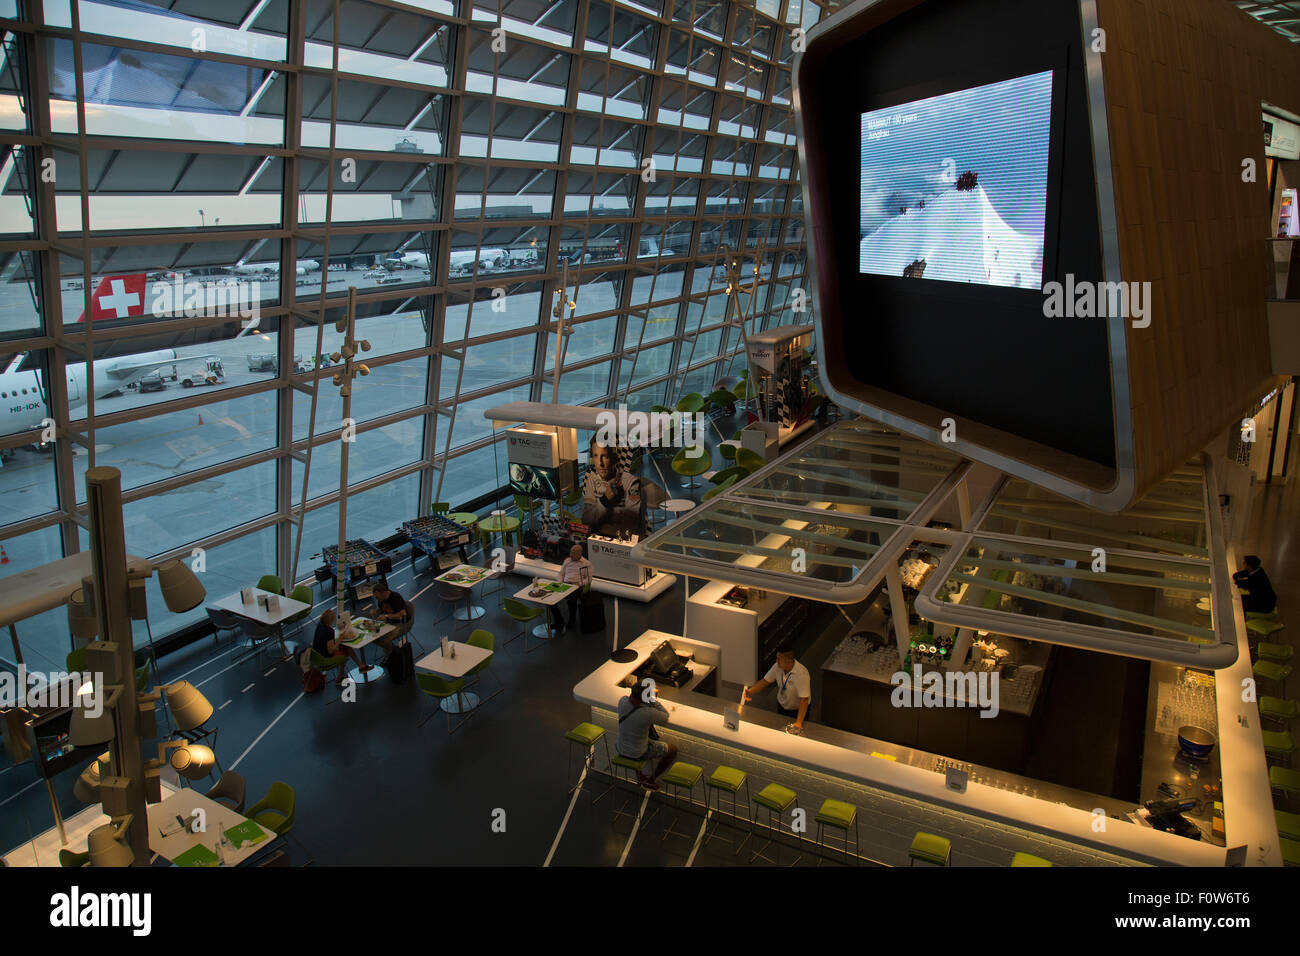 inside the departure lounge of Zurich airport - Stock Image